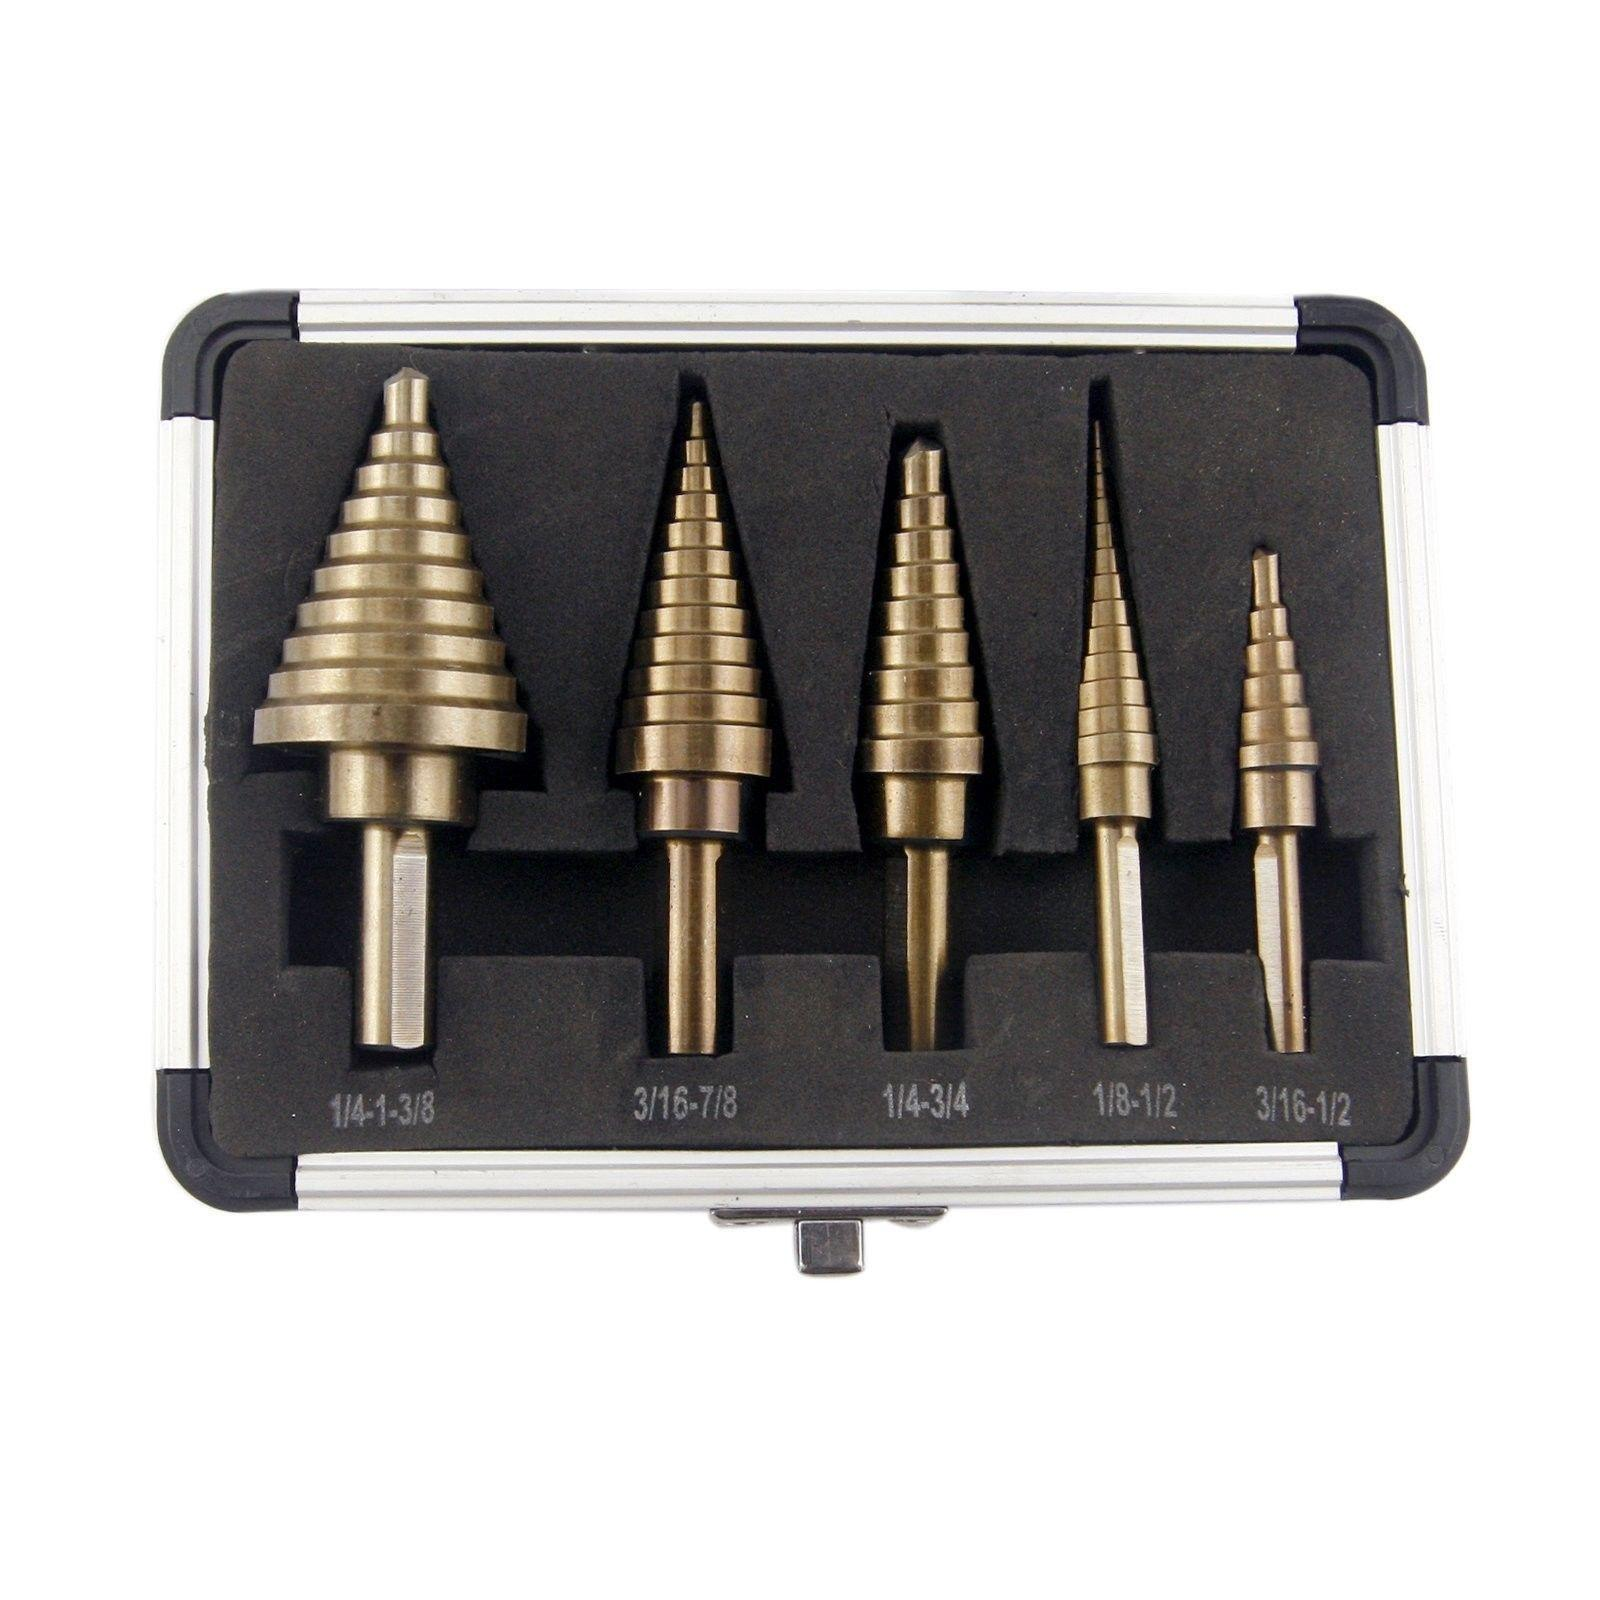 Hss industrial drill bits ebay co z 5pcs hss cobalt multiple hole 50 sizes step drill bit set with aluminum greentooth Images